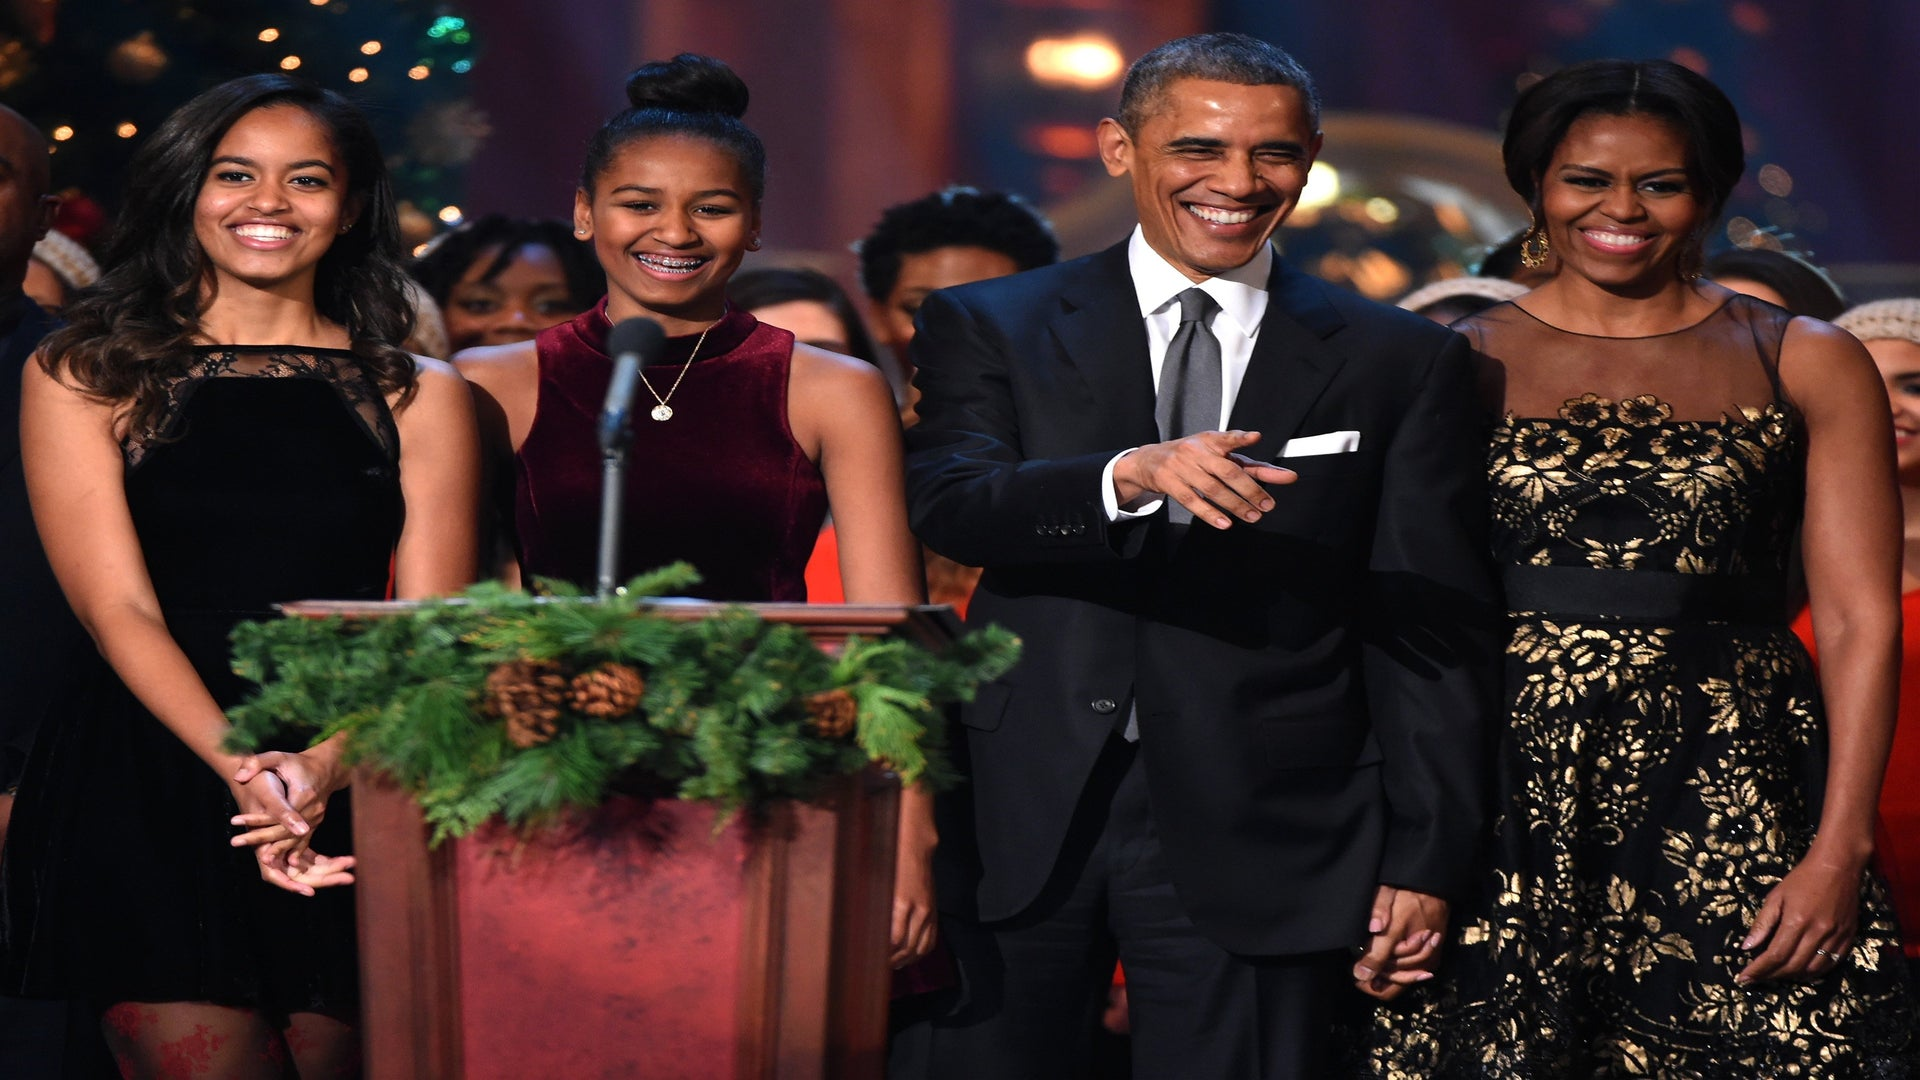 Malia And Sasha Obama's Last Night In The White House Featured Pizza And A Slumber Party